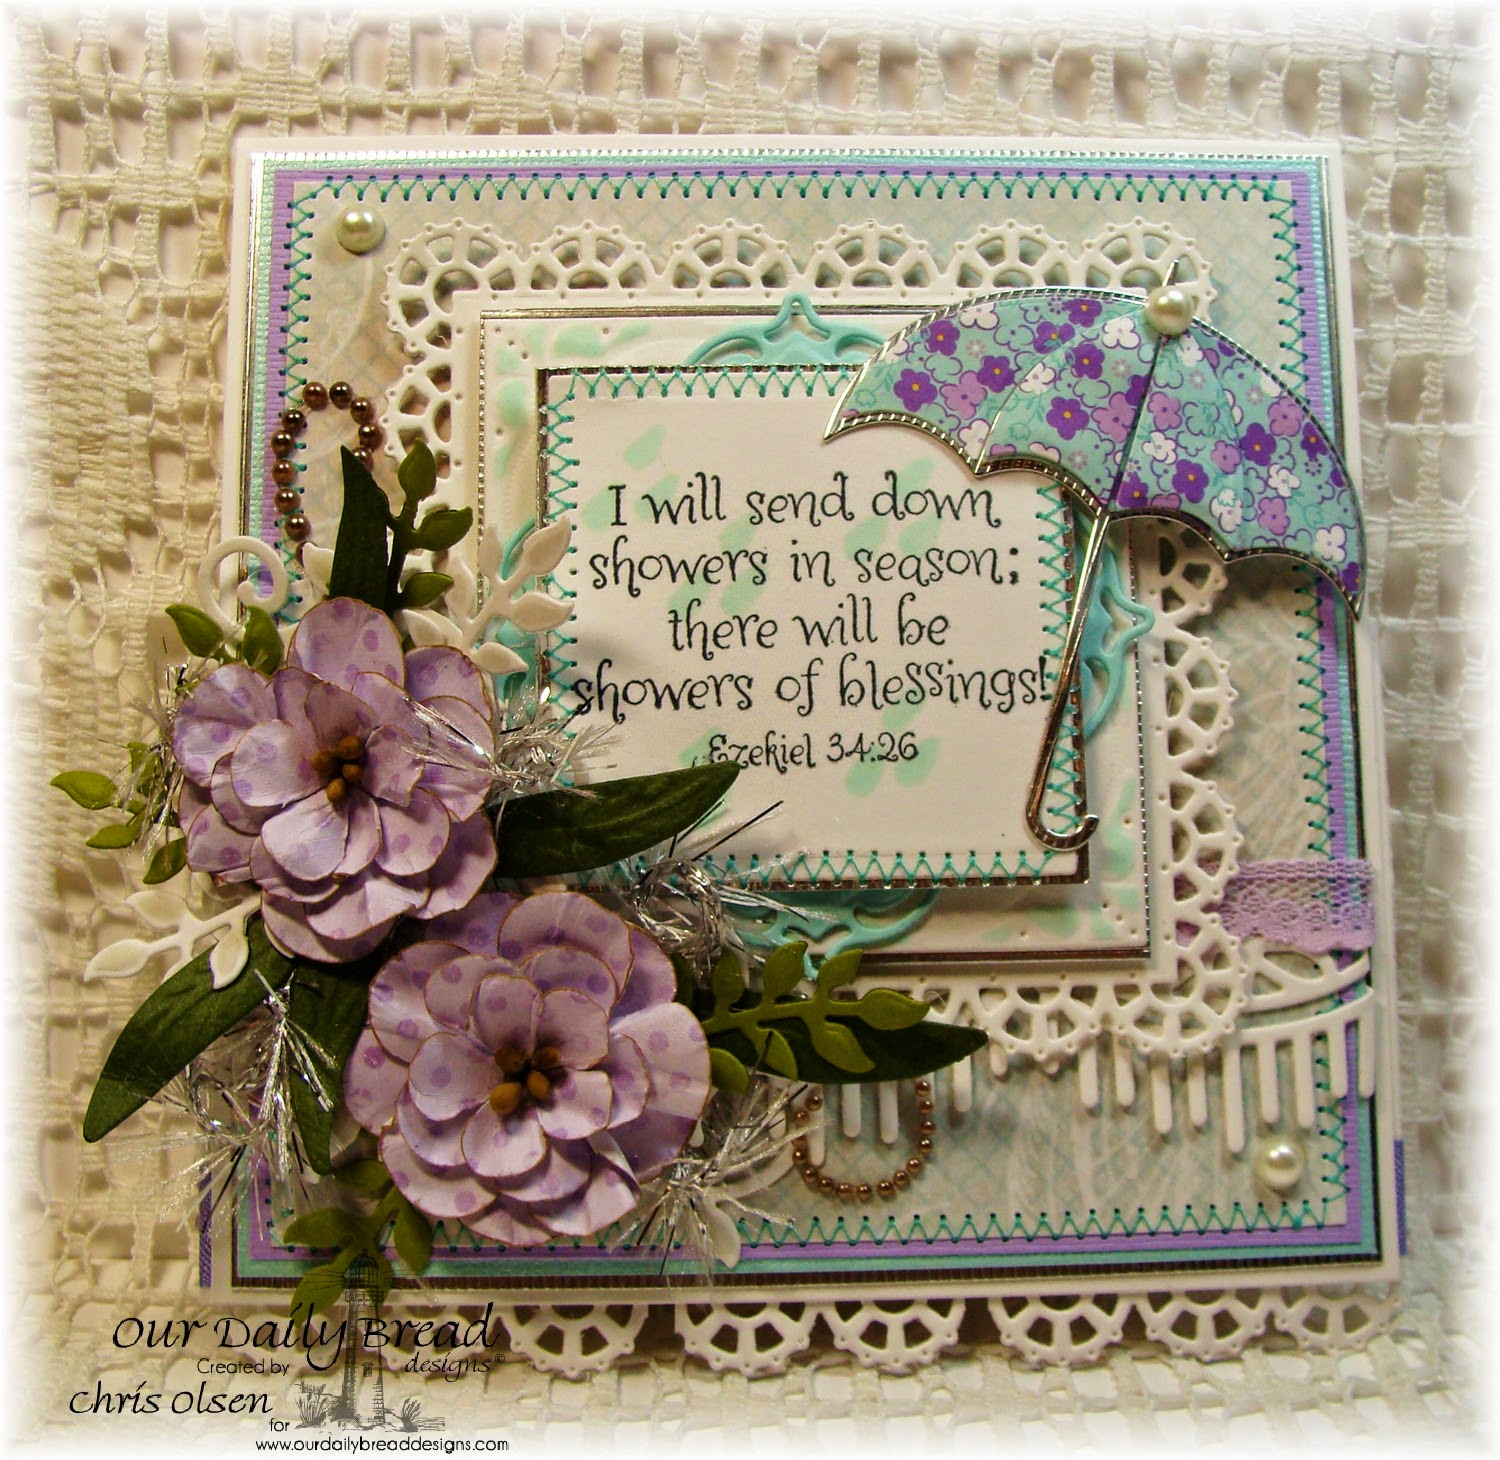 Our Daily Bread Designs, Umbrella die, Showers of blessing, Layered Lacey Squares die, Fancy Foliage, Beautiful Borders, Aster die, Shabby Rose Collection, designer-Chris Olsen, Twinkles Glow with Stamps